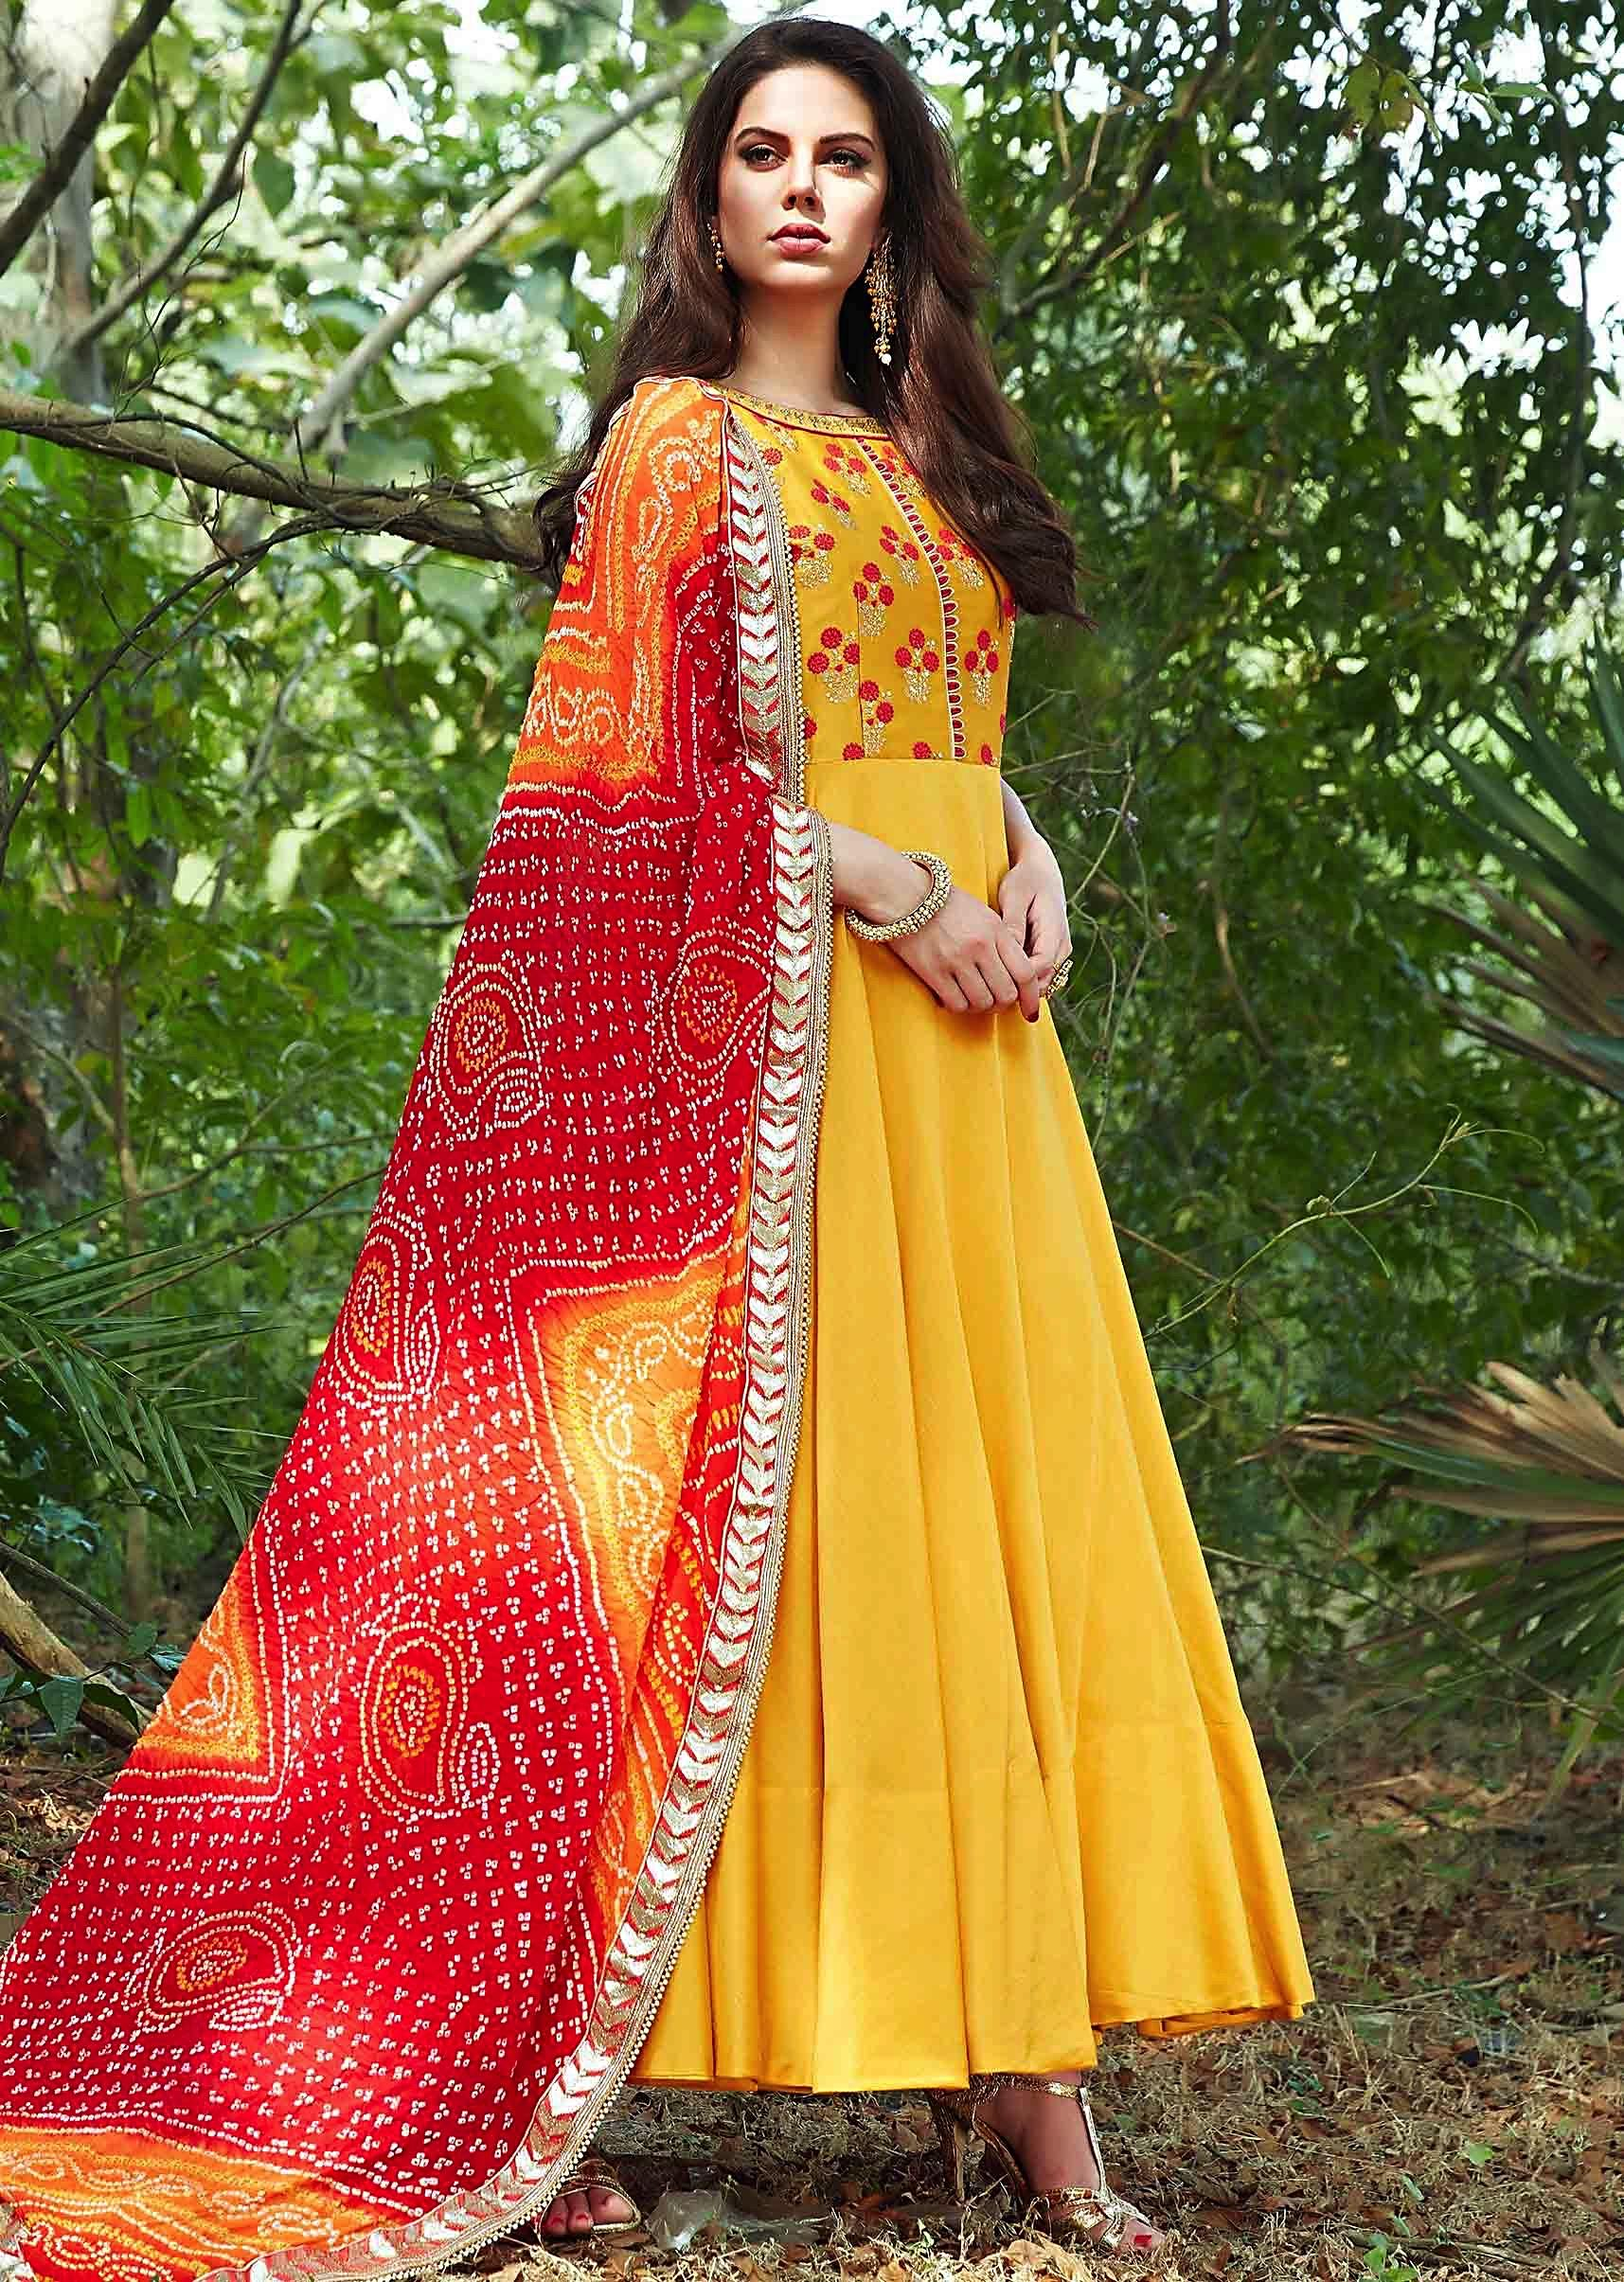 f780e18dcedc Bright yellow anarkali suit with embroidered bodice and bandhani dupatta